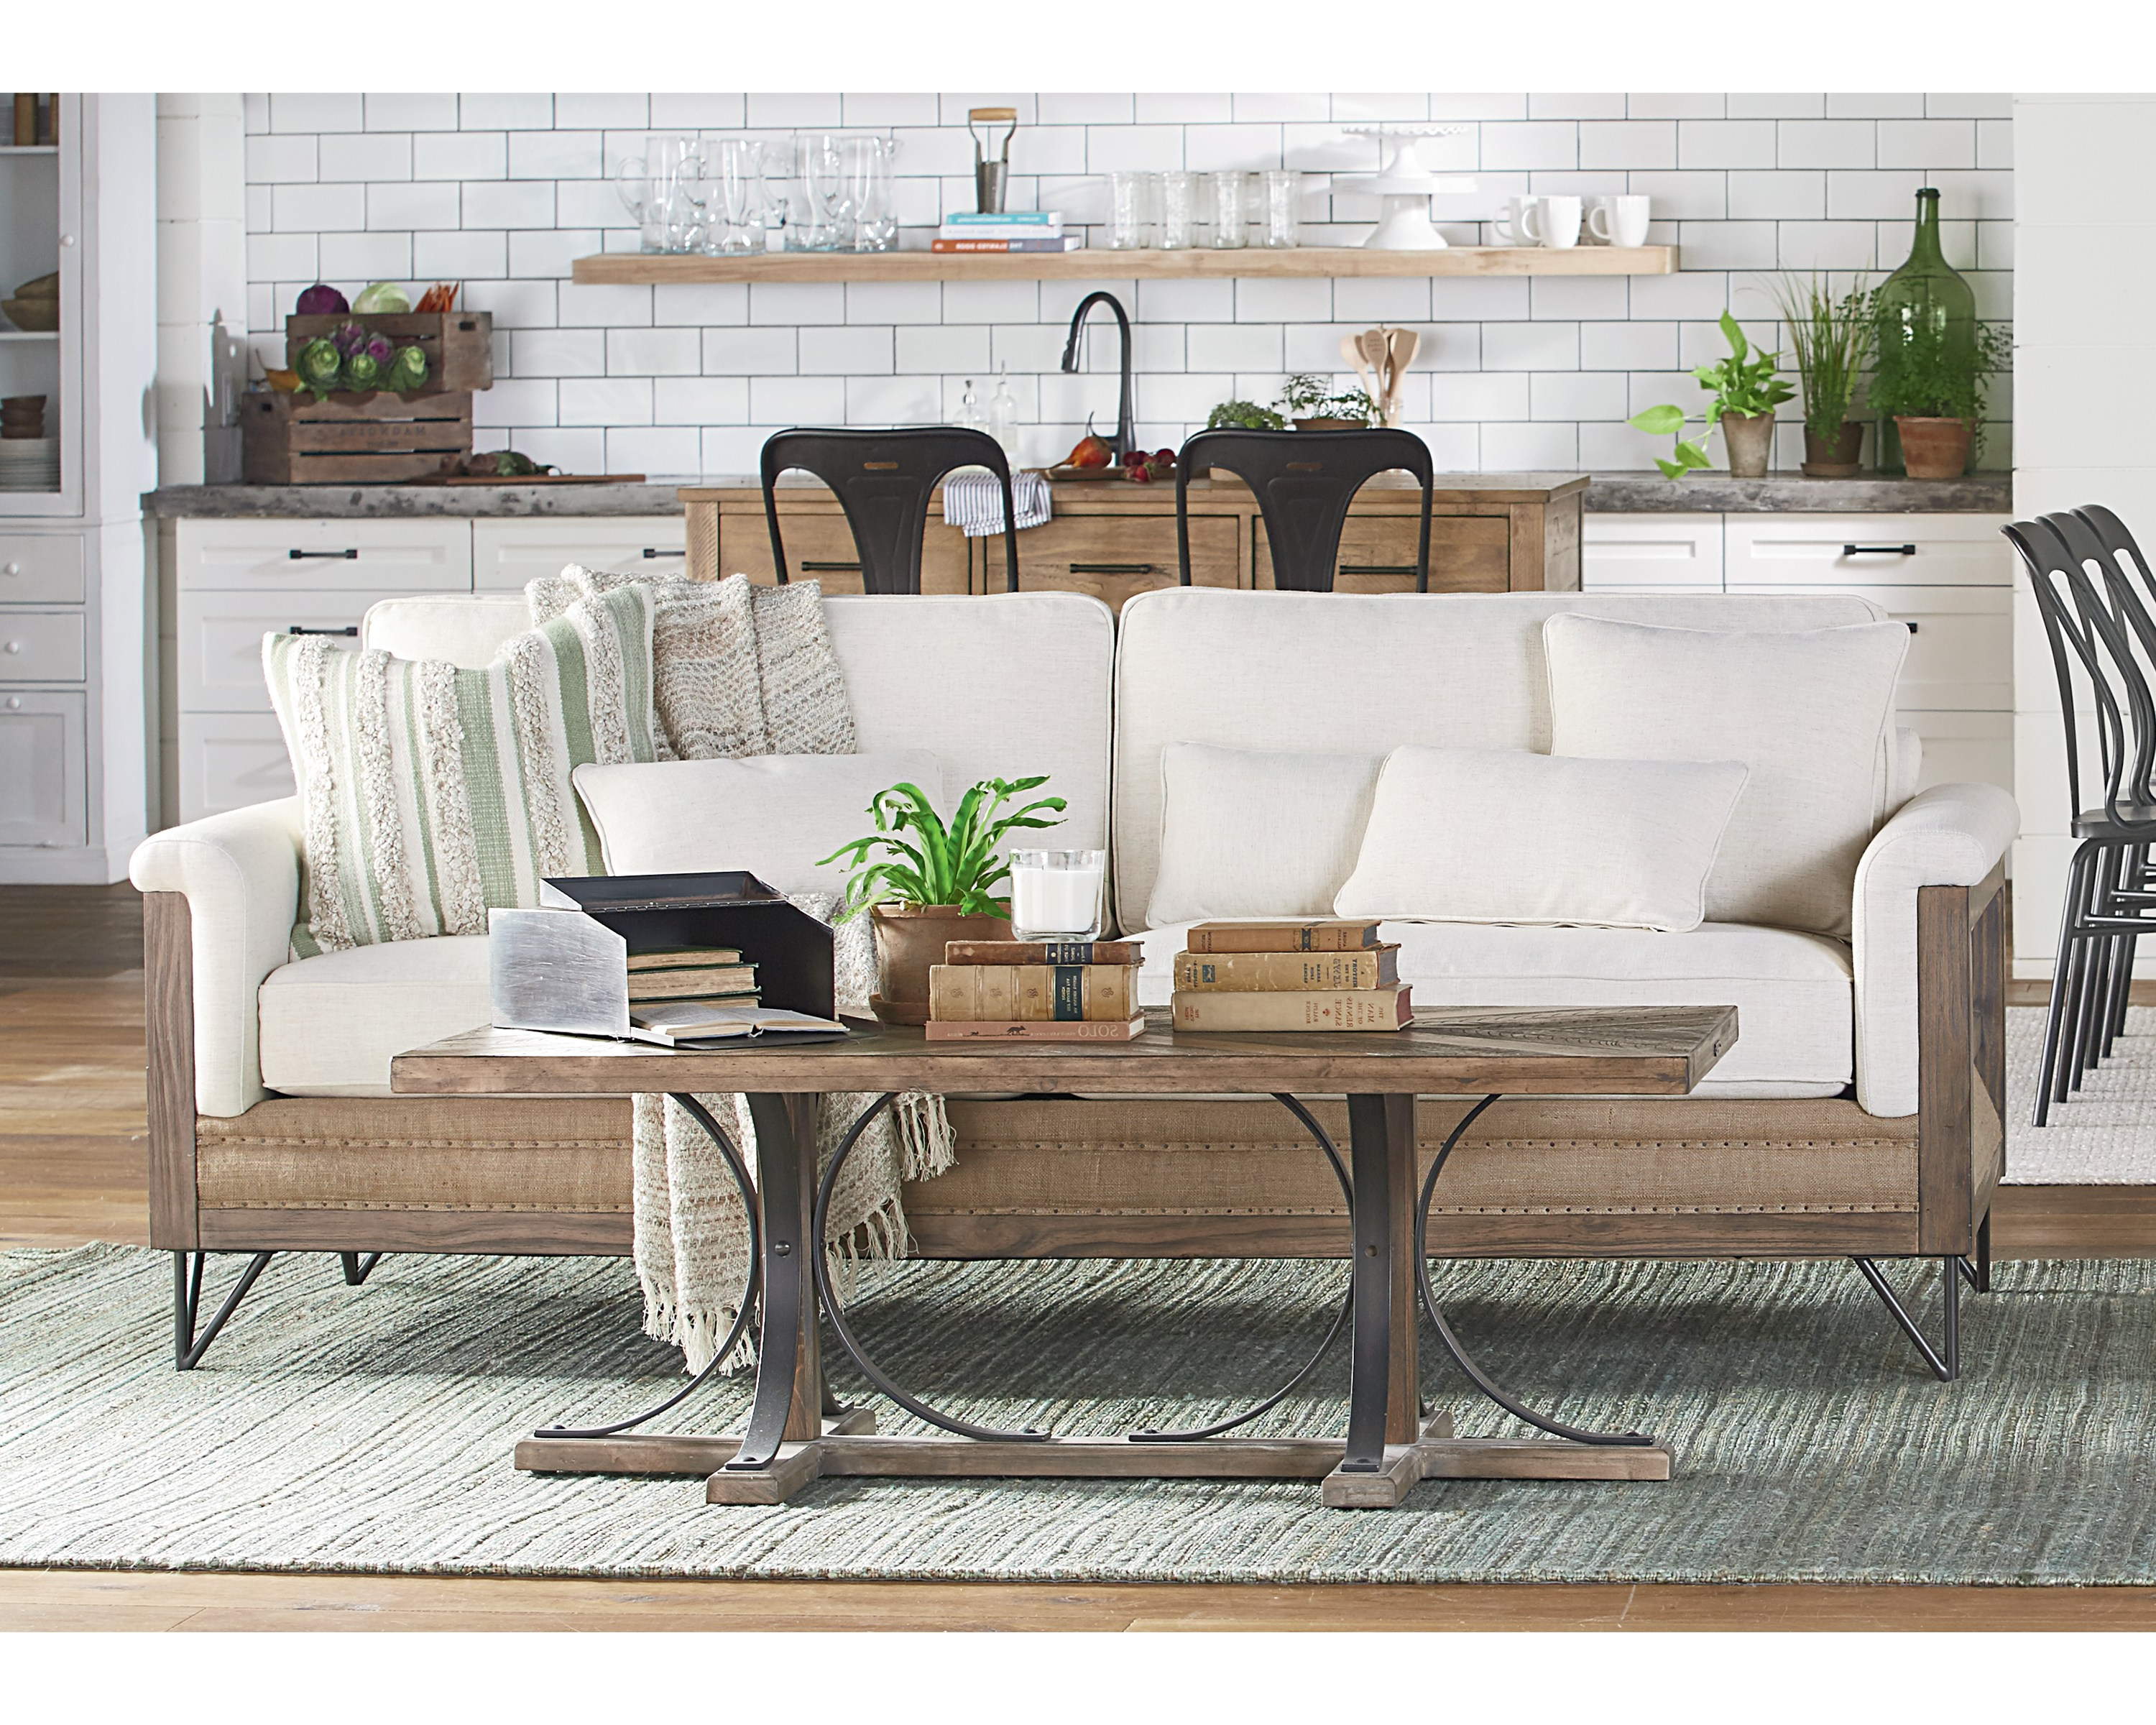 Paradigm Sofa – Magnolia Home With Regard To Famous Magnolia Home Paradigm Sofa Chairs By Joanna Gaines (View 17 of 20)